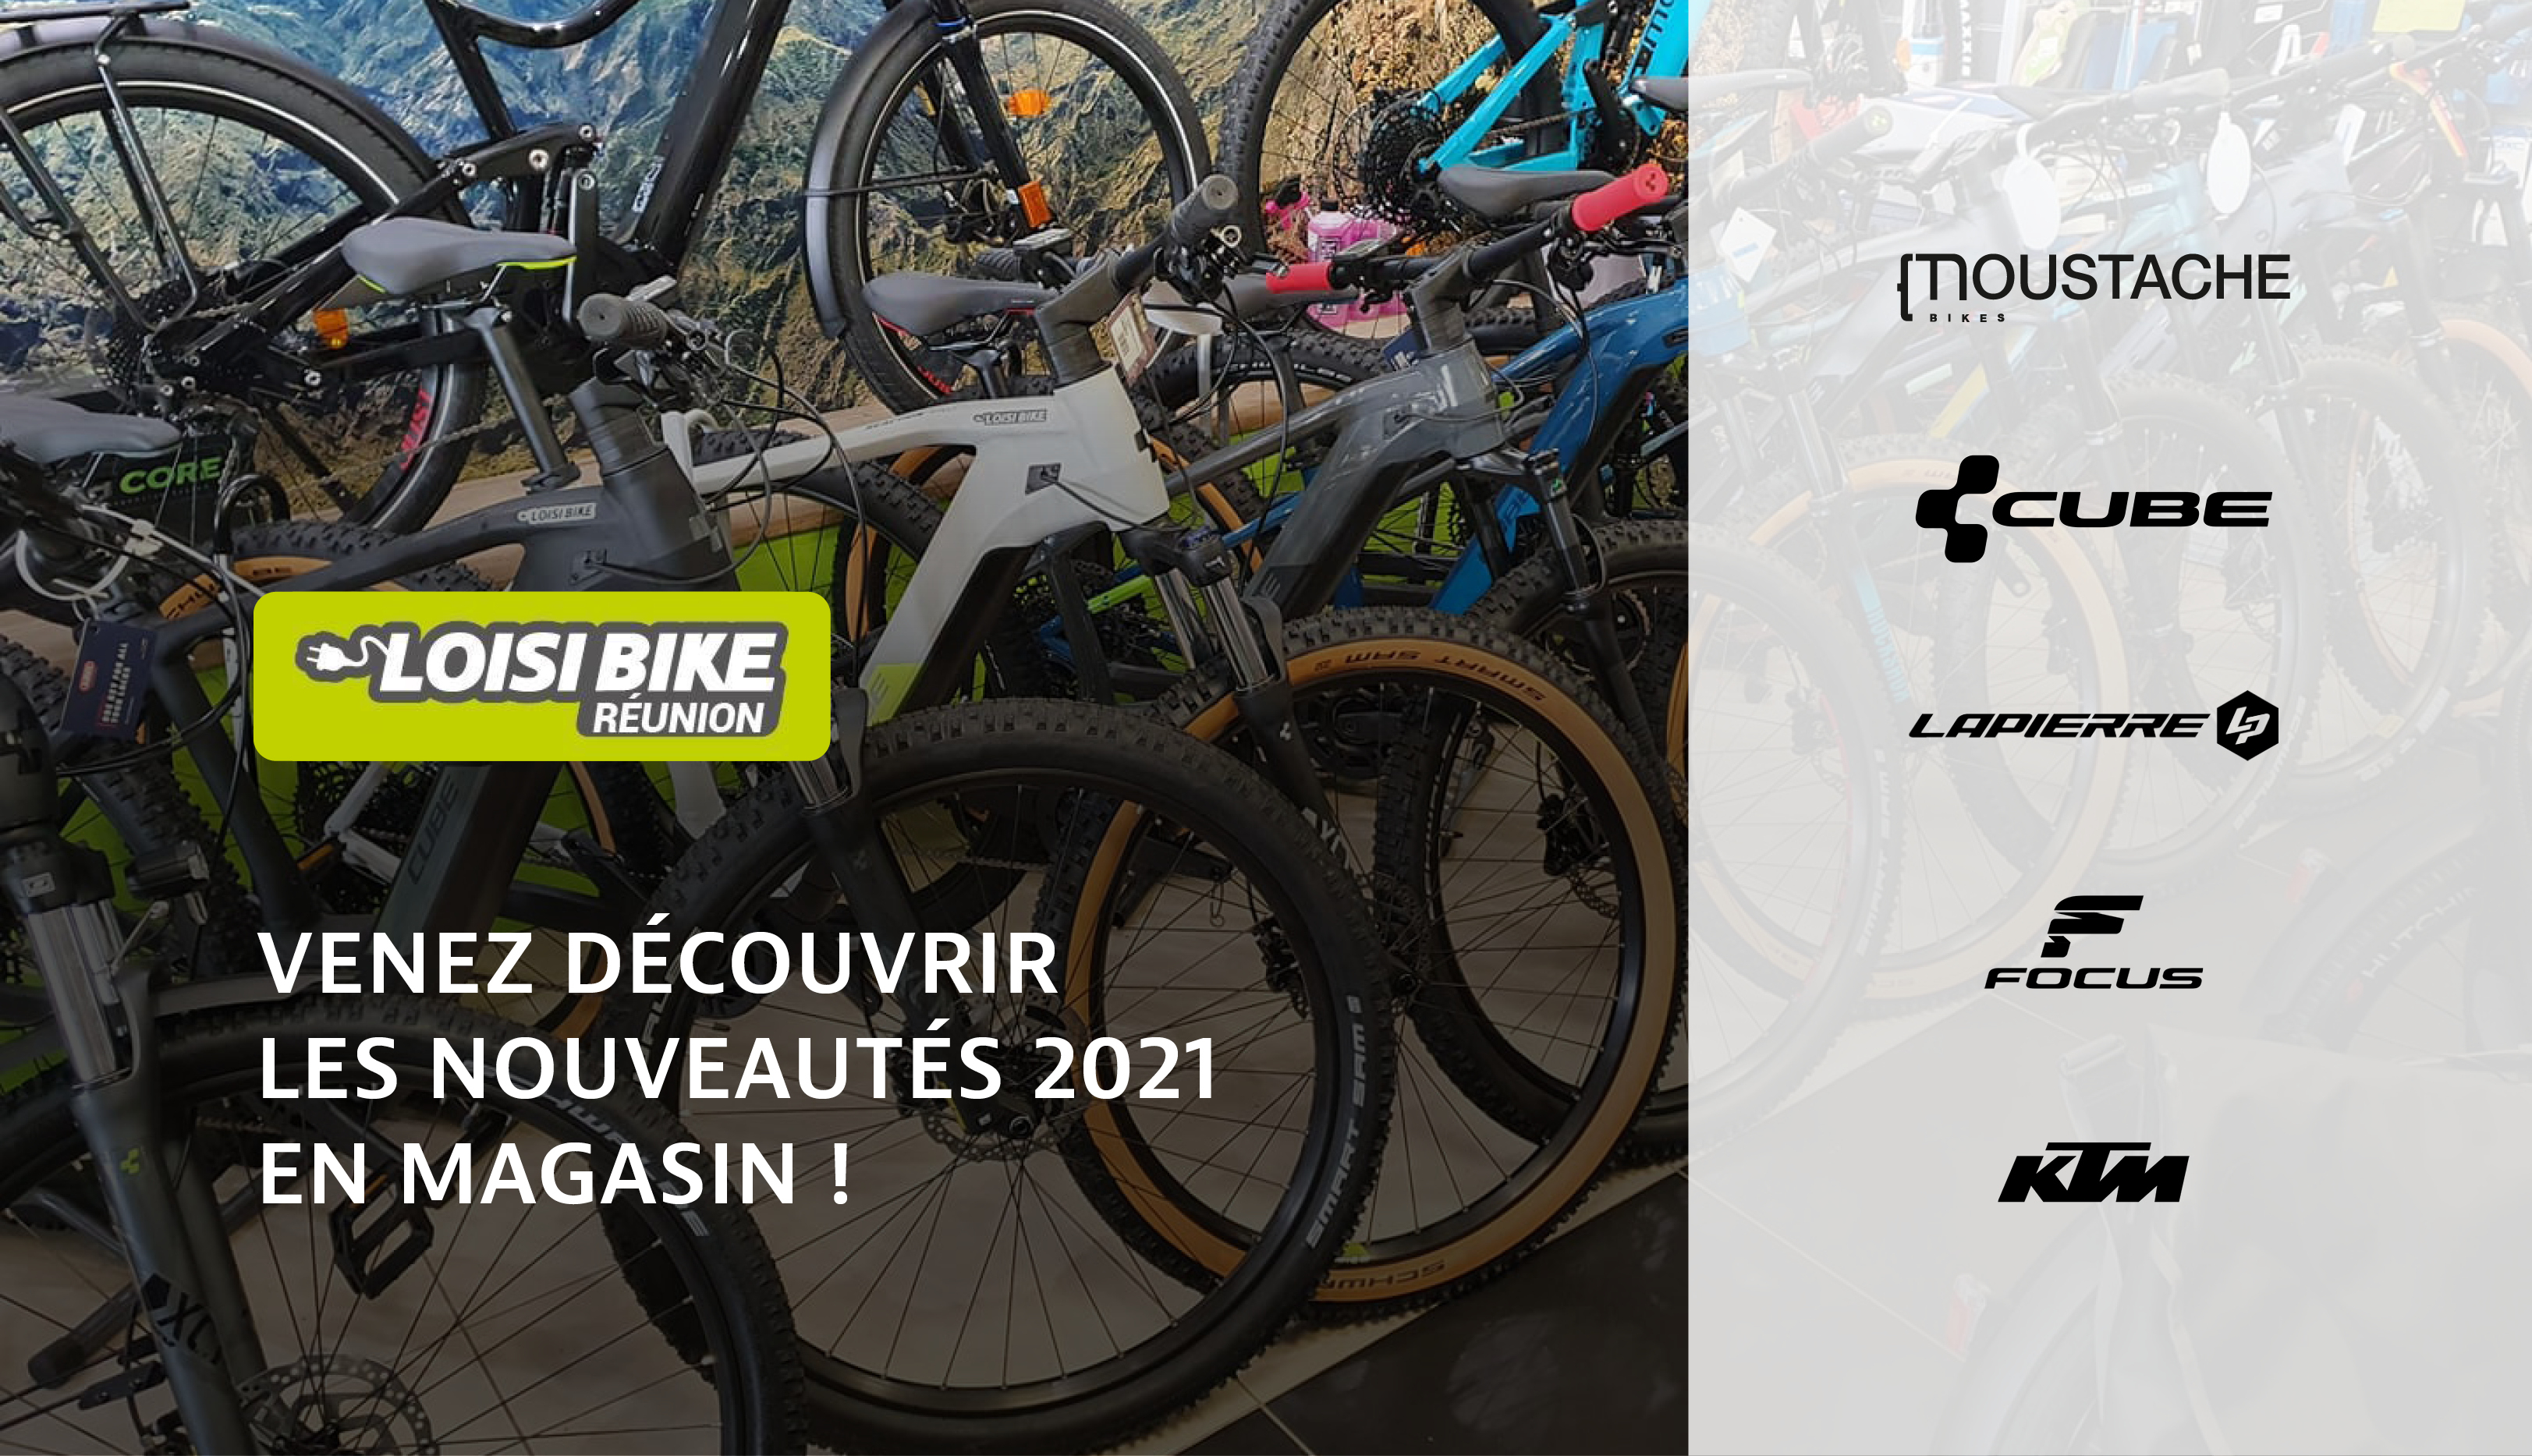 Gamme Loisibike 2021